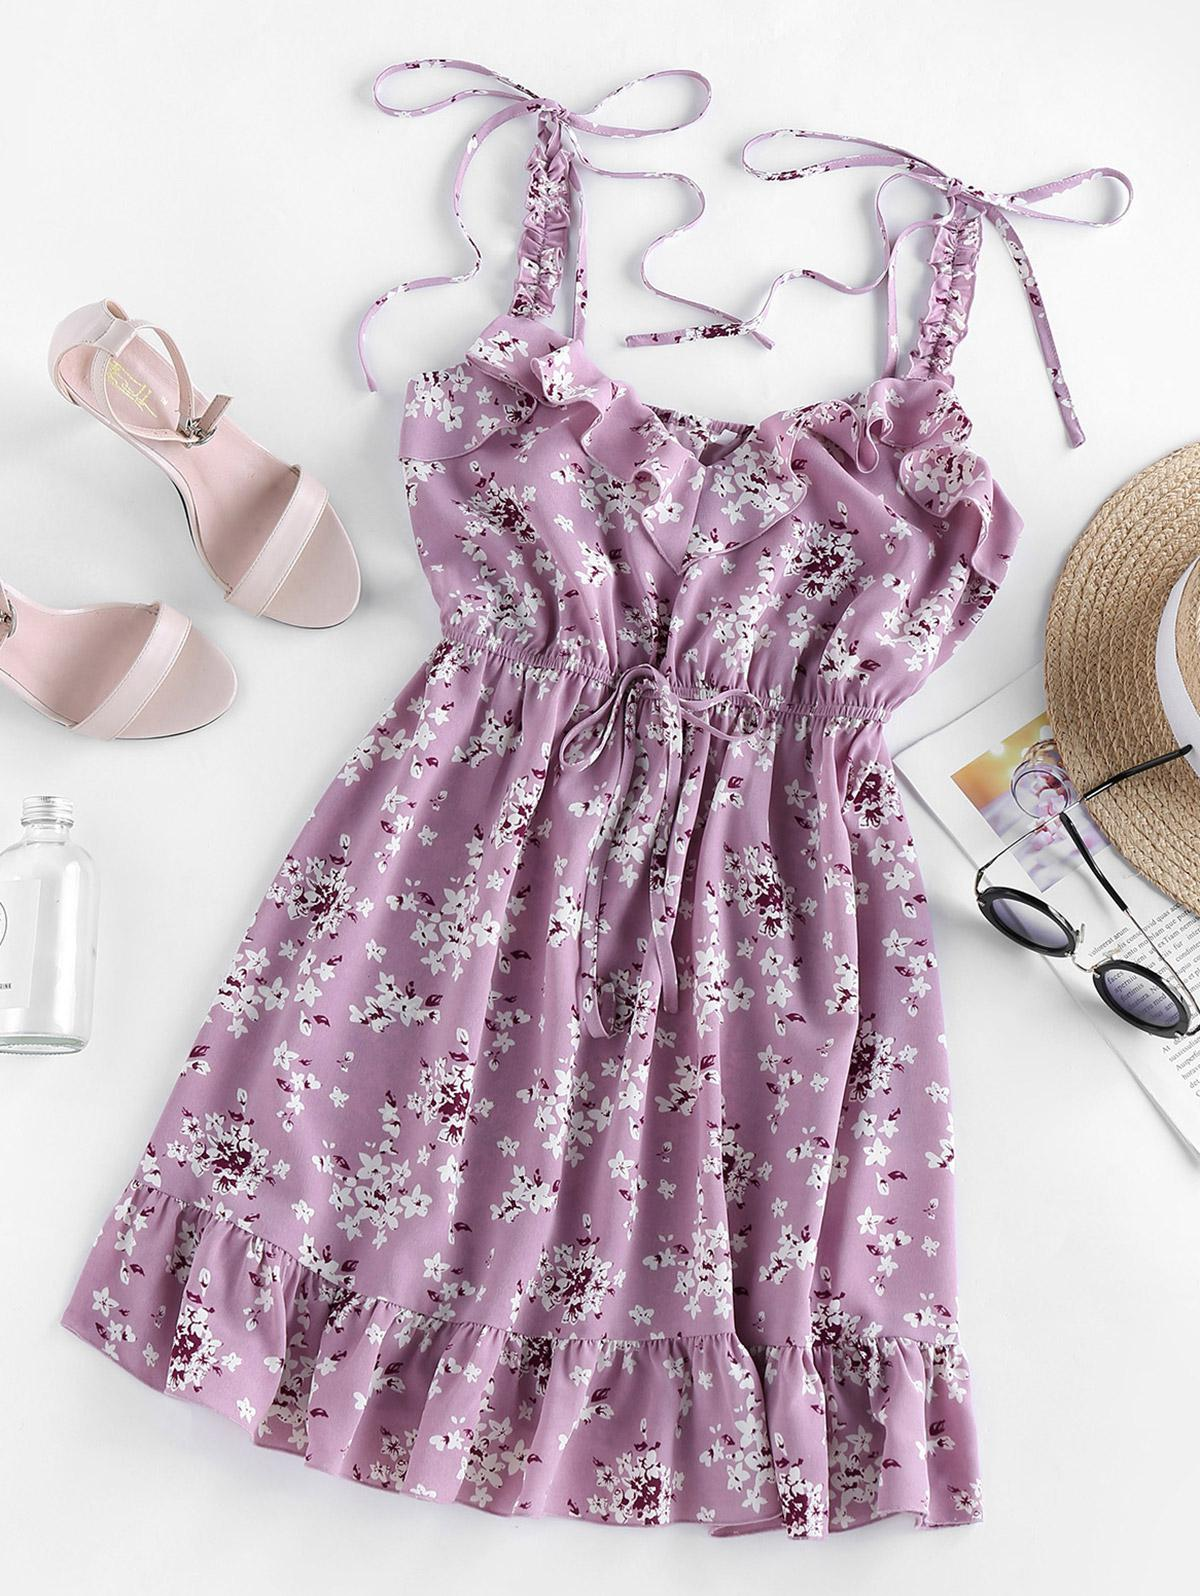 ZAFUL Ditsy Floral Ruffle Tie Strap Sun Dress